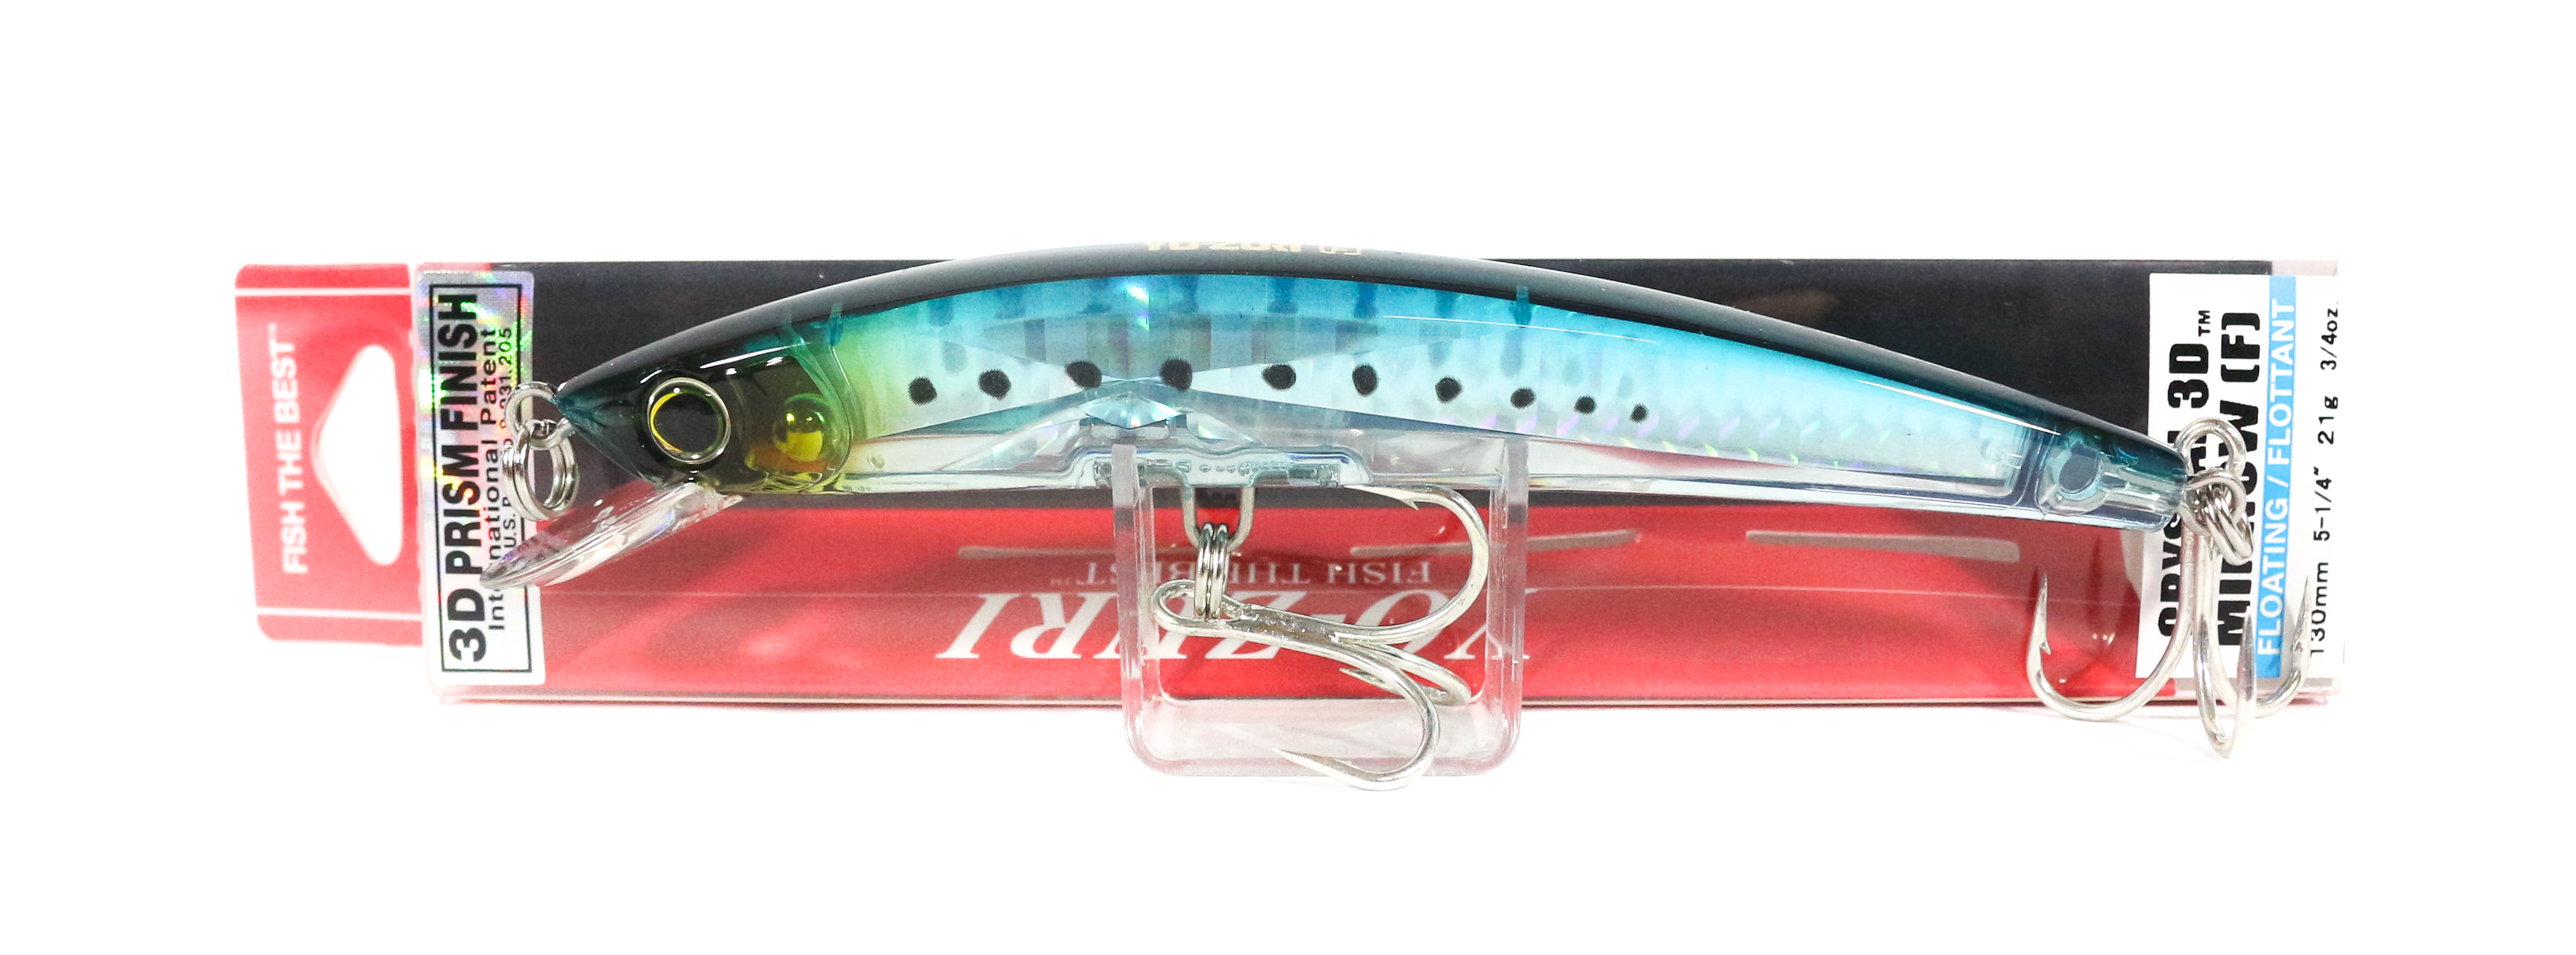 Yo Zuri 3D Crystal Minnow 130 mm Floating Lure F1147-GHIW (5884)